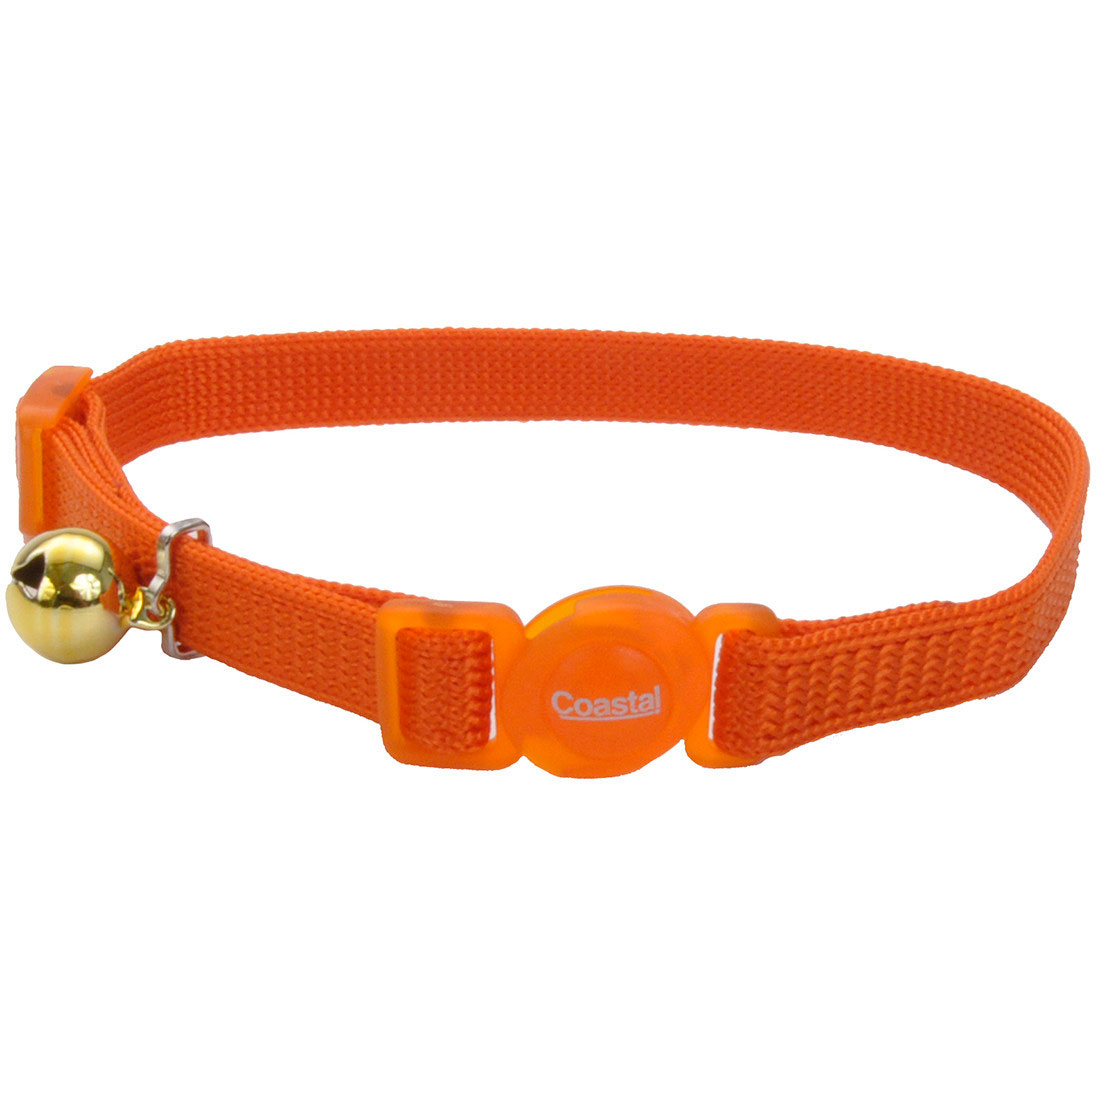 Safe Cat Adjustable Snag-Proof Breakaway Cat Collar, Sunset Orange Image